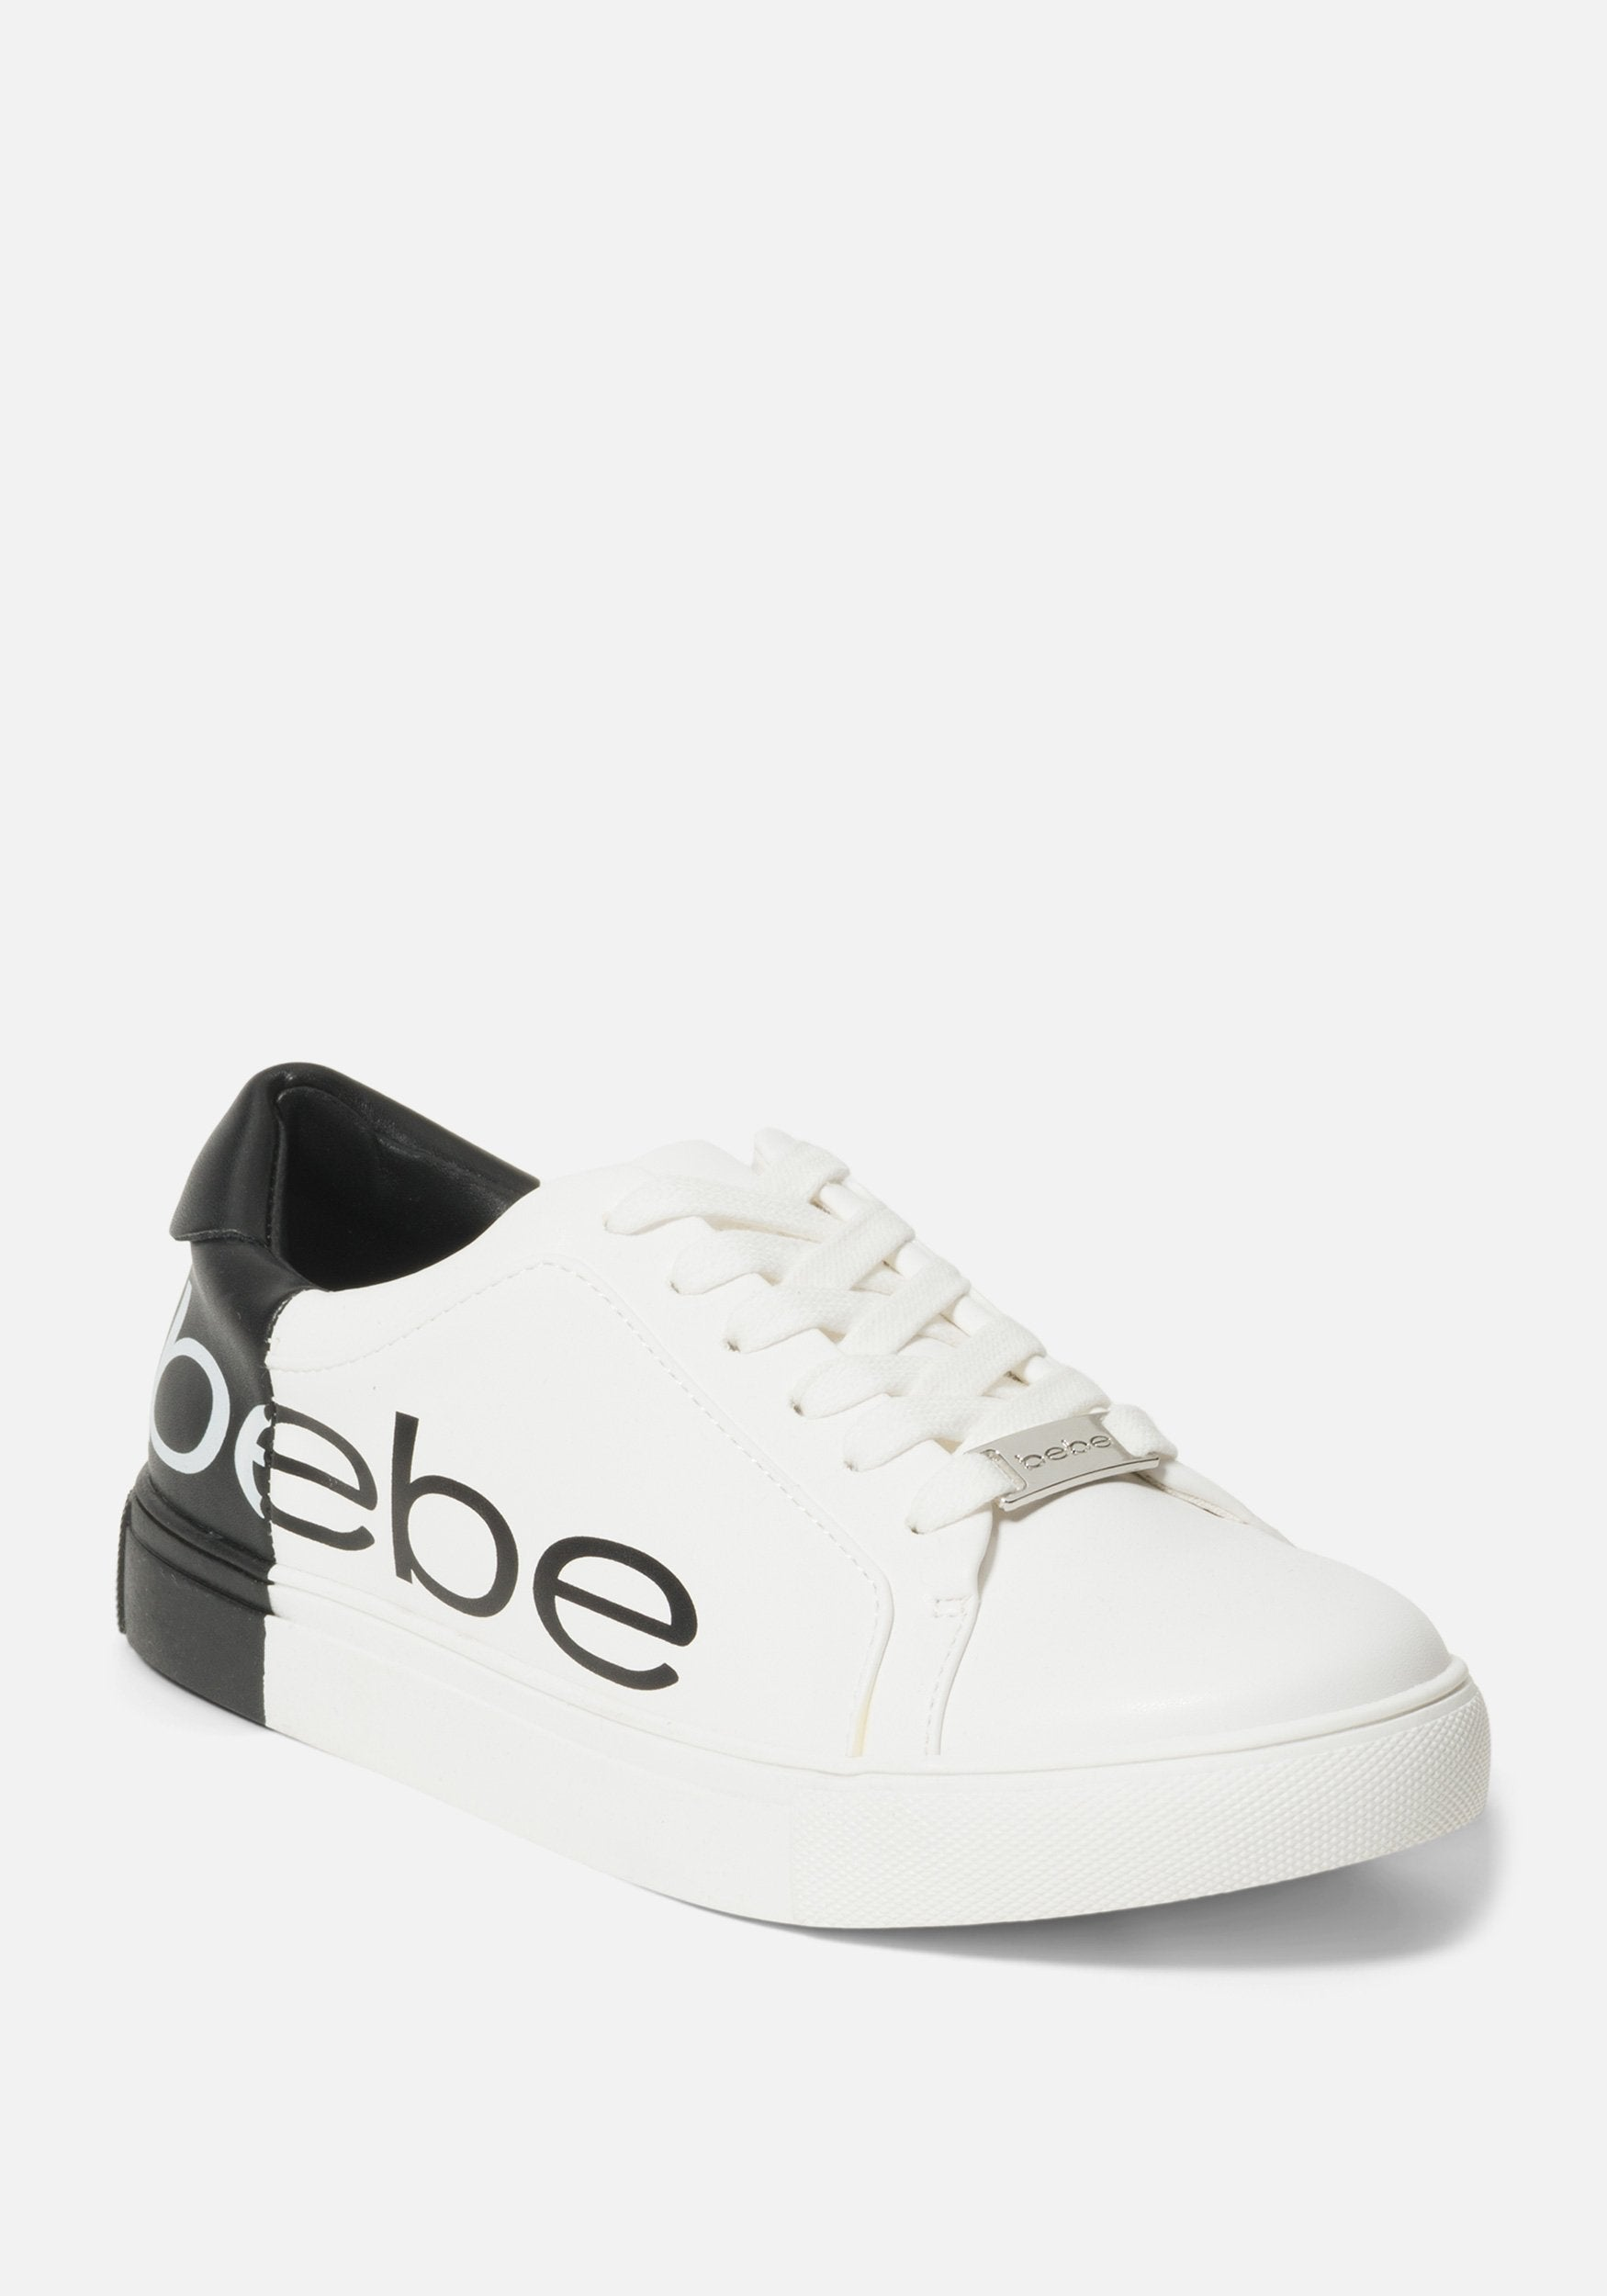 Image of Bebe Women's Charley Shoe, Size 10 in White/Black Synthetic